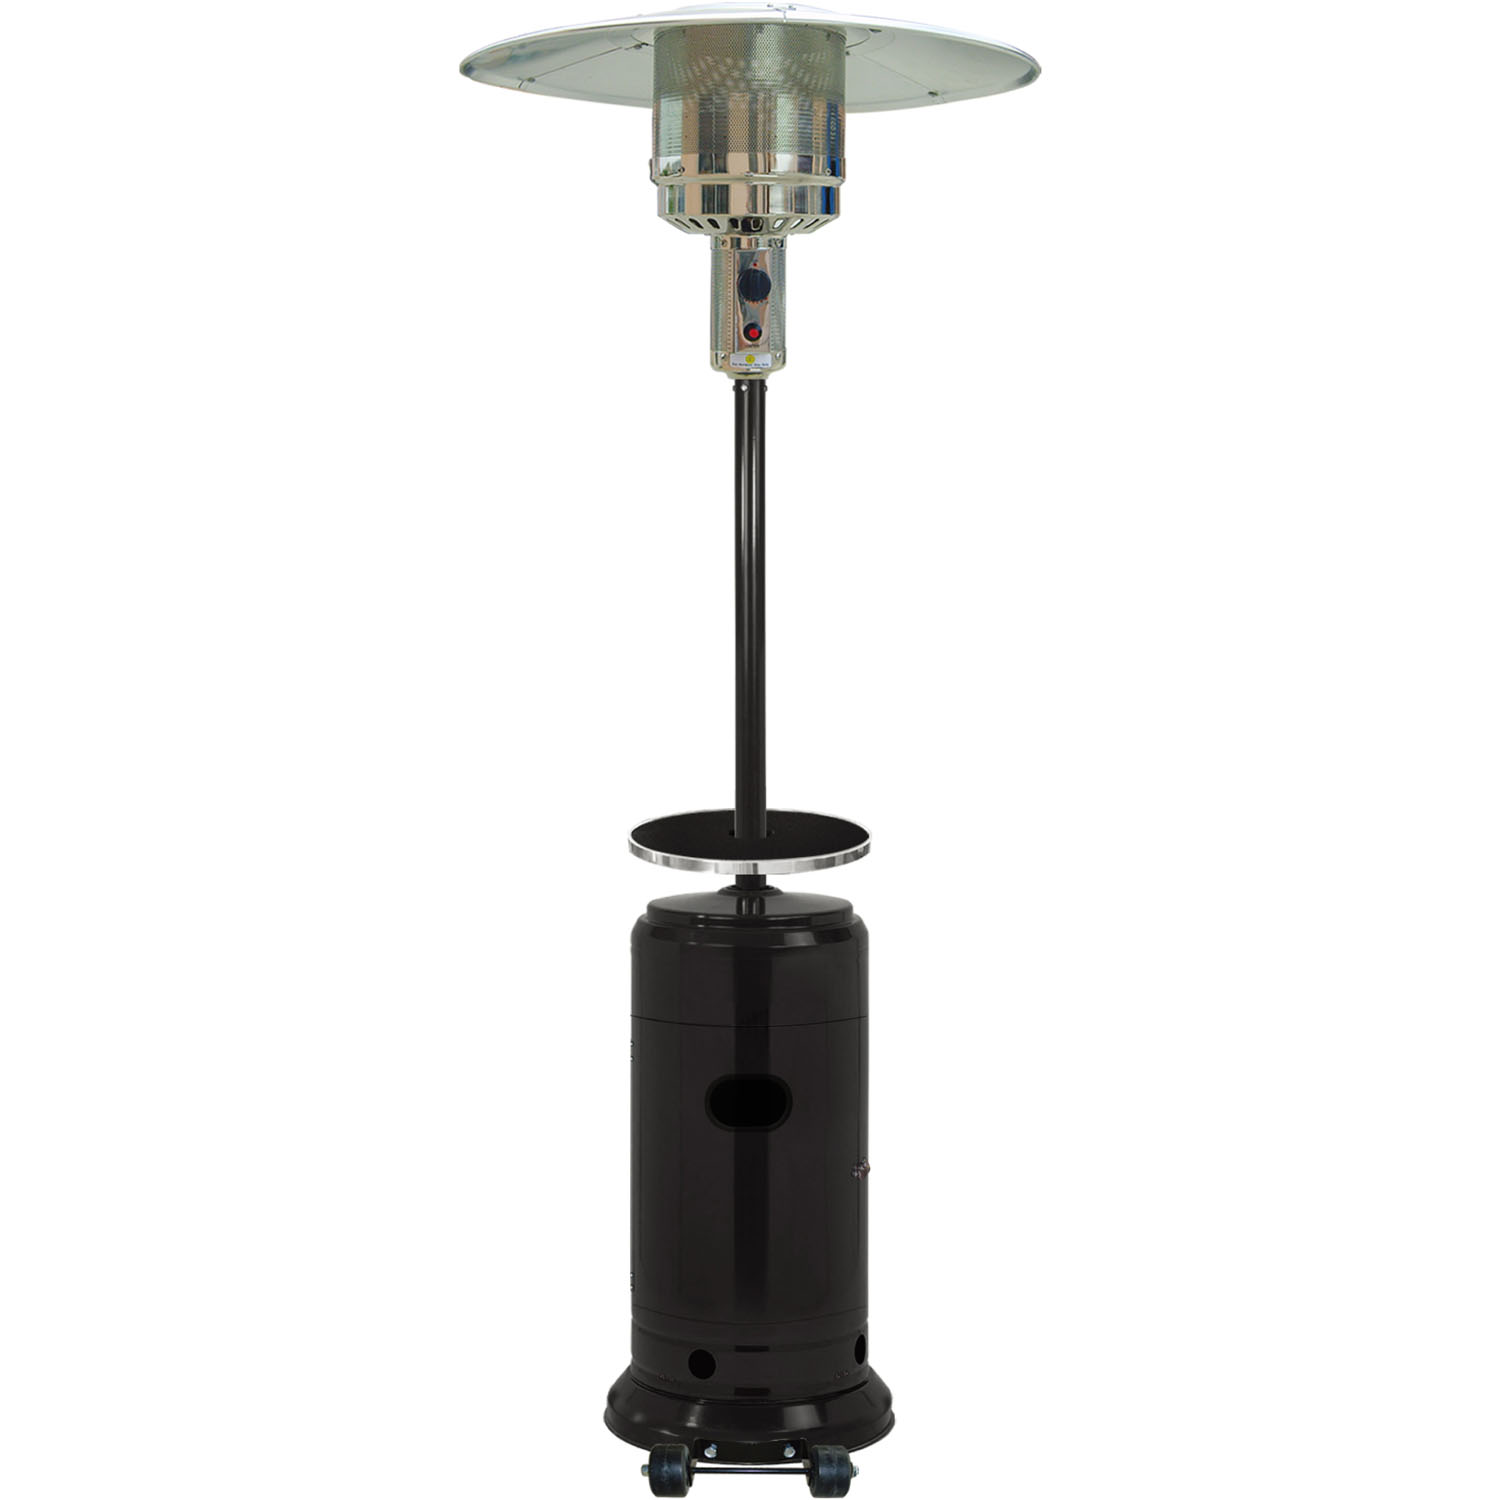 Hanover 7-Ft. 41,000 BTU Umbrella Patio Heater in Black by Hanover